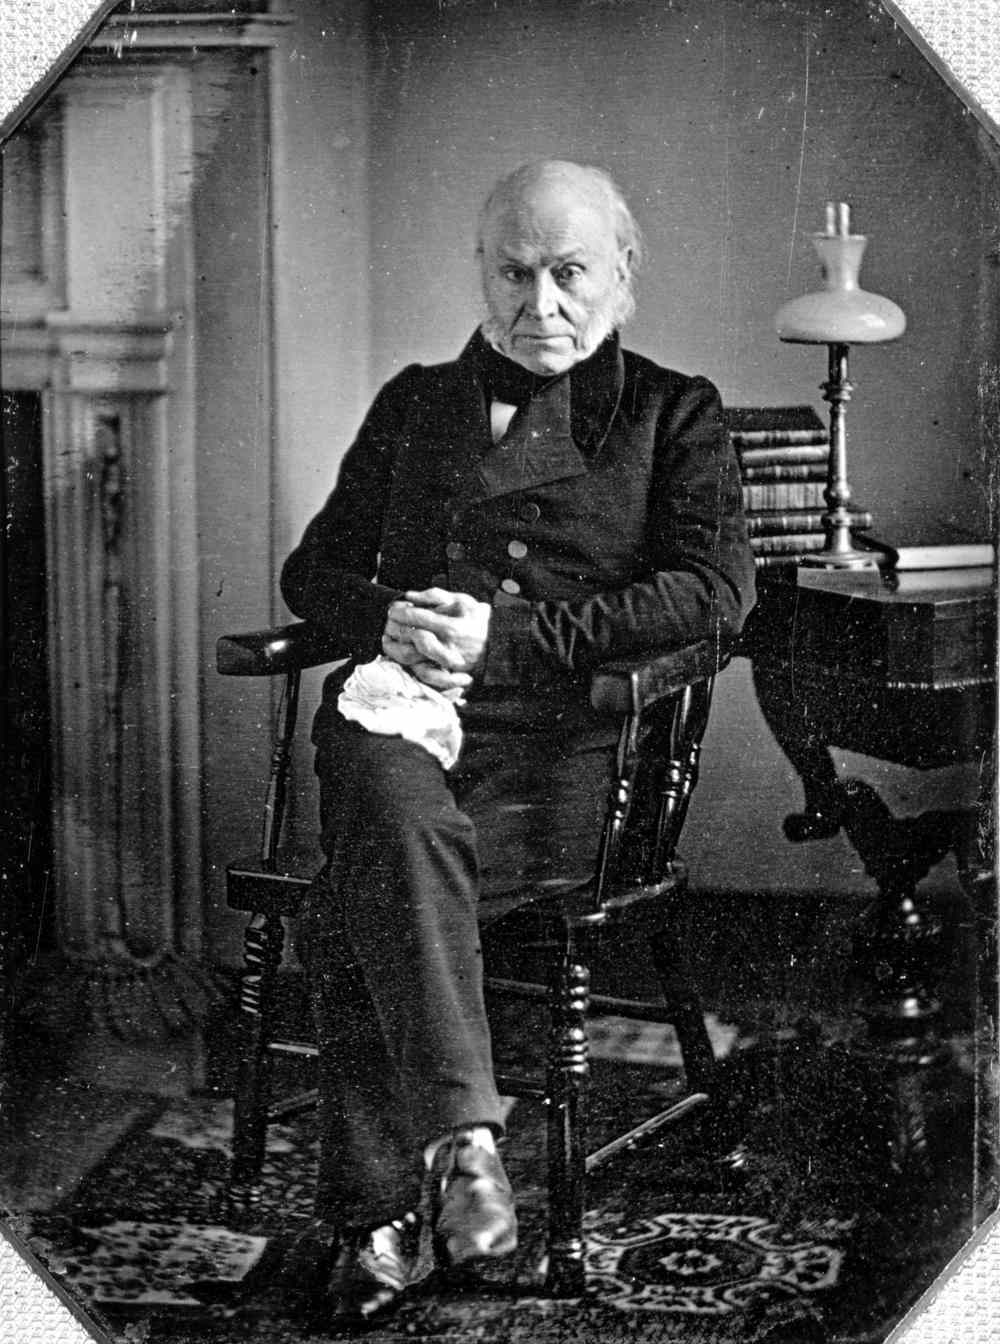 John Quincy Adams The First President To Be Photographed